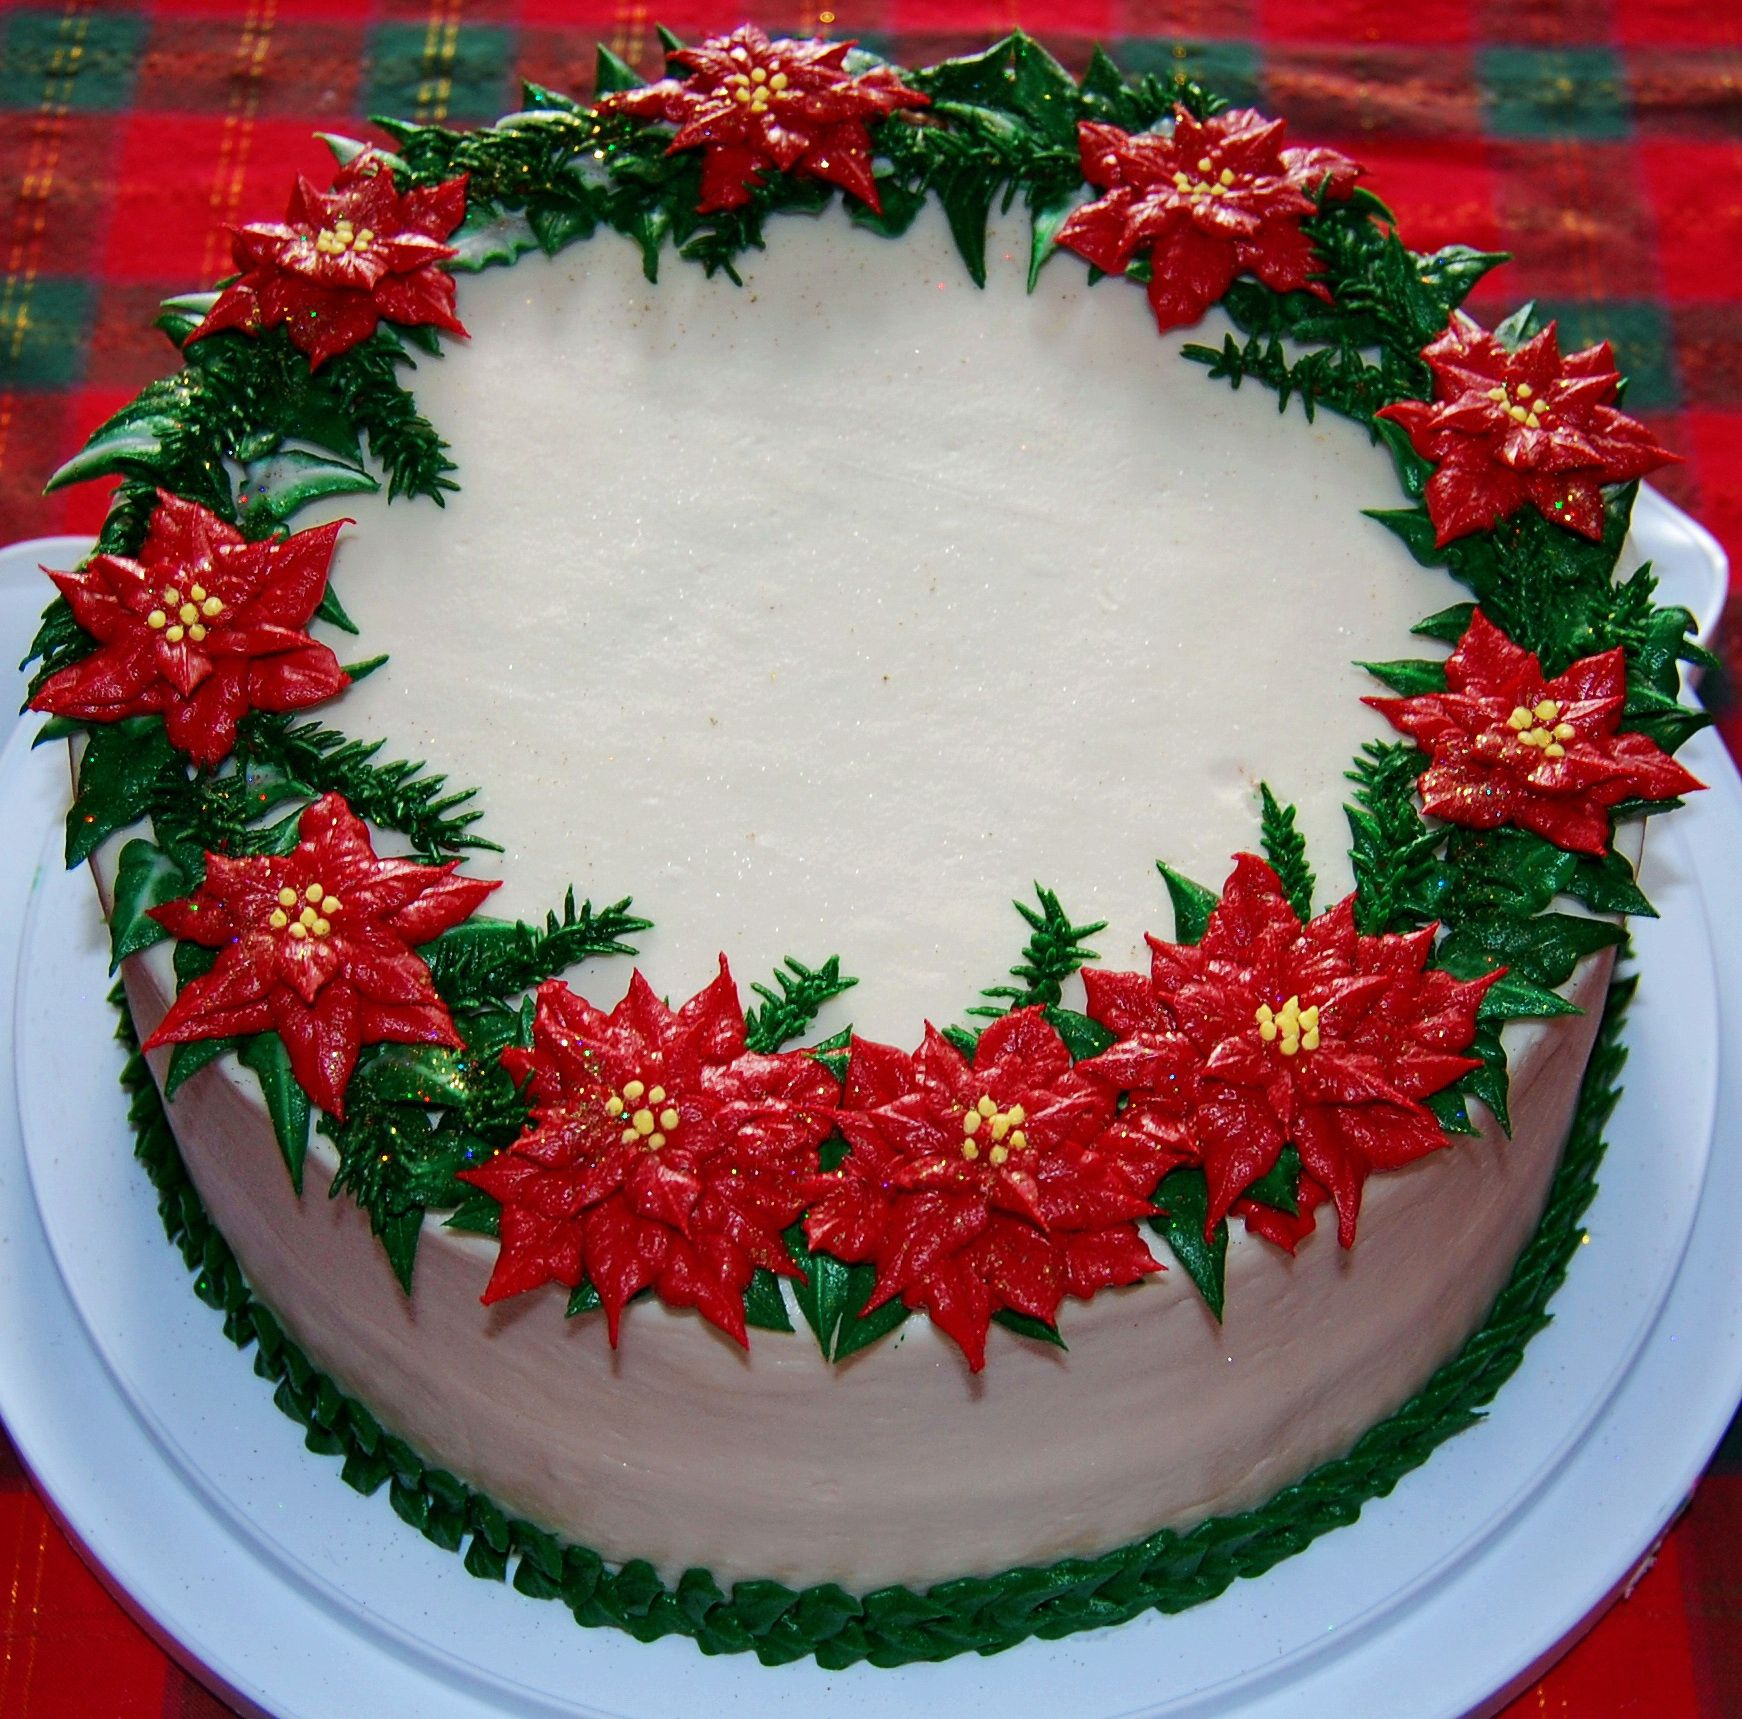 Christmas Cake Decorating With Buttercream : Christmas Wreath Cake - I made this cake as a my ...